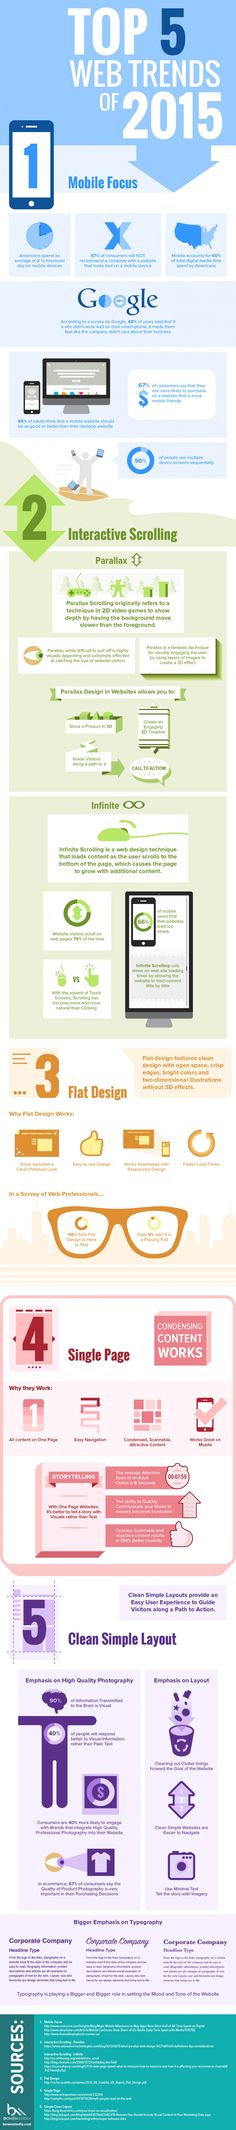 Top 5 Web Design Trends For 2015 #infographic